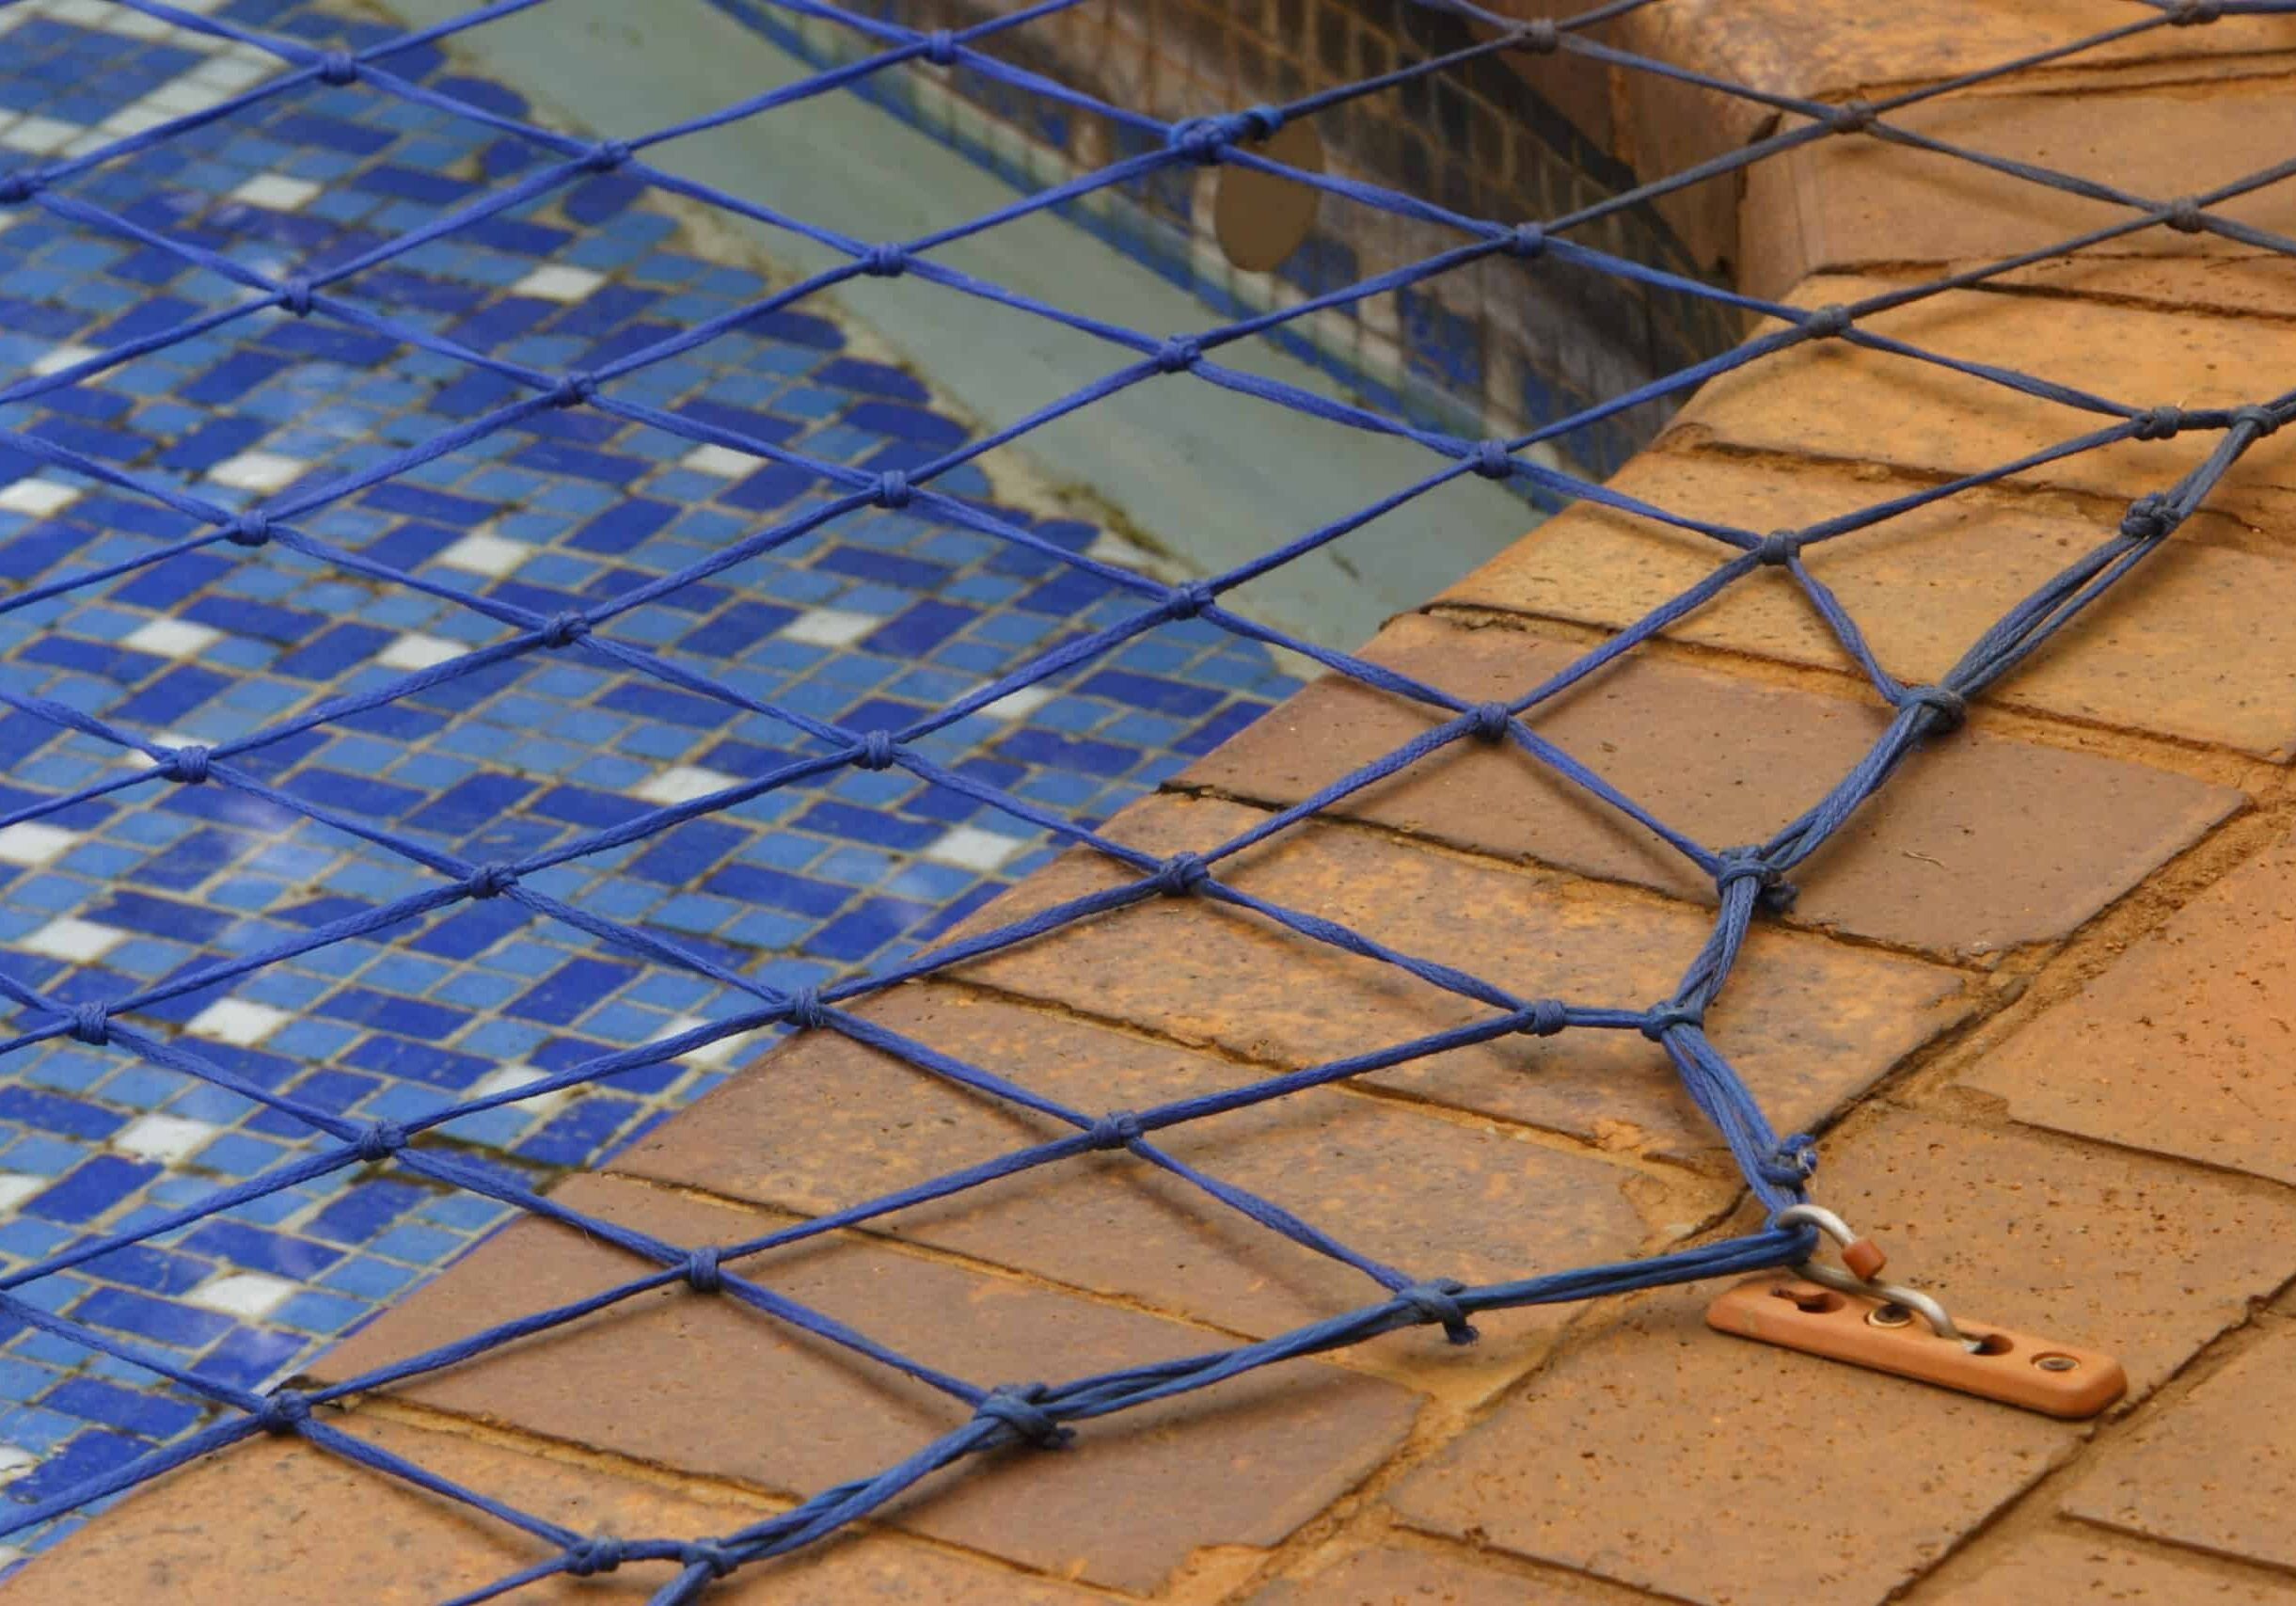 Close up view of a swimming pool net